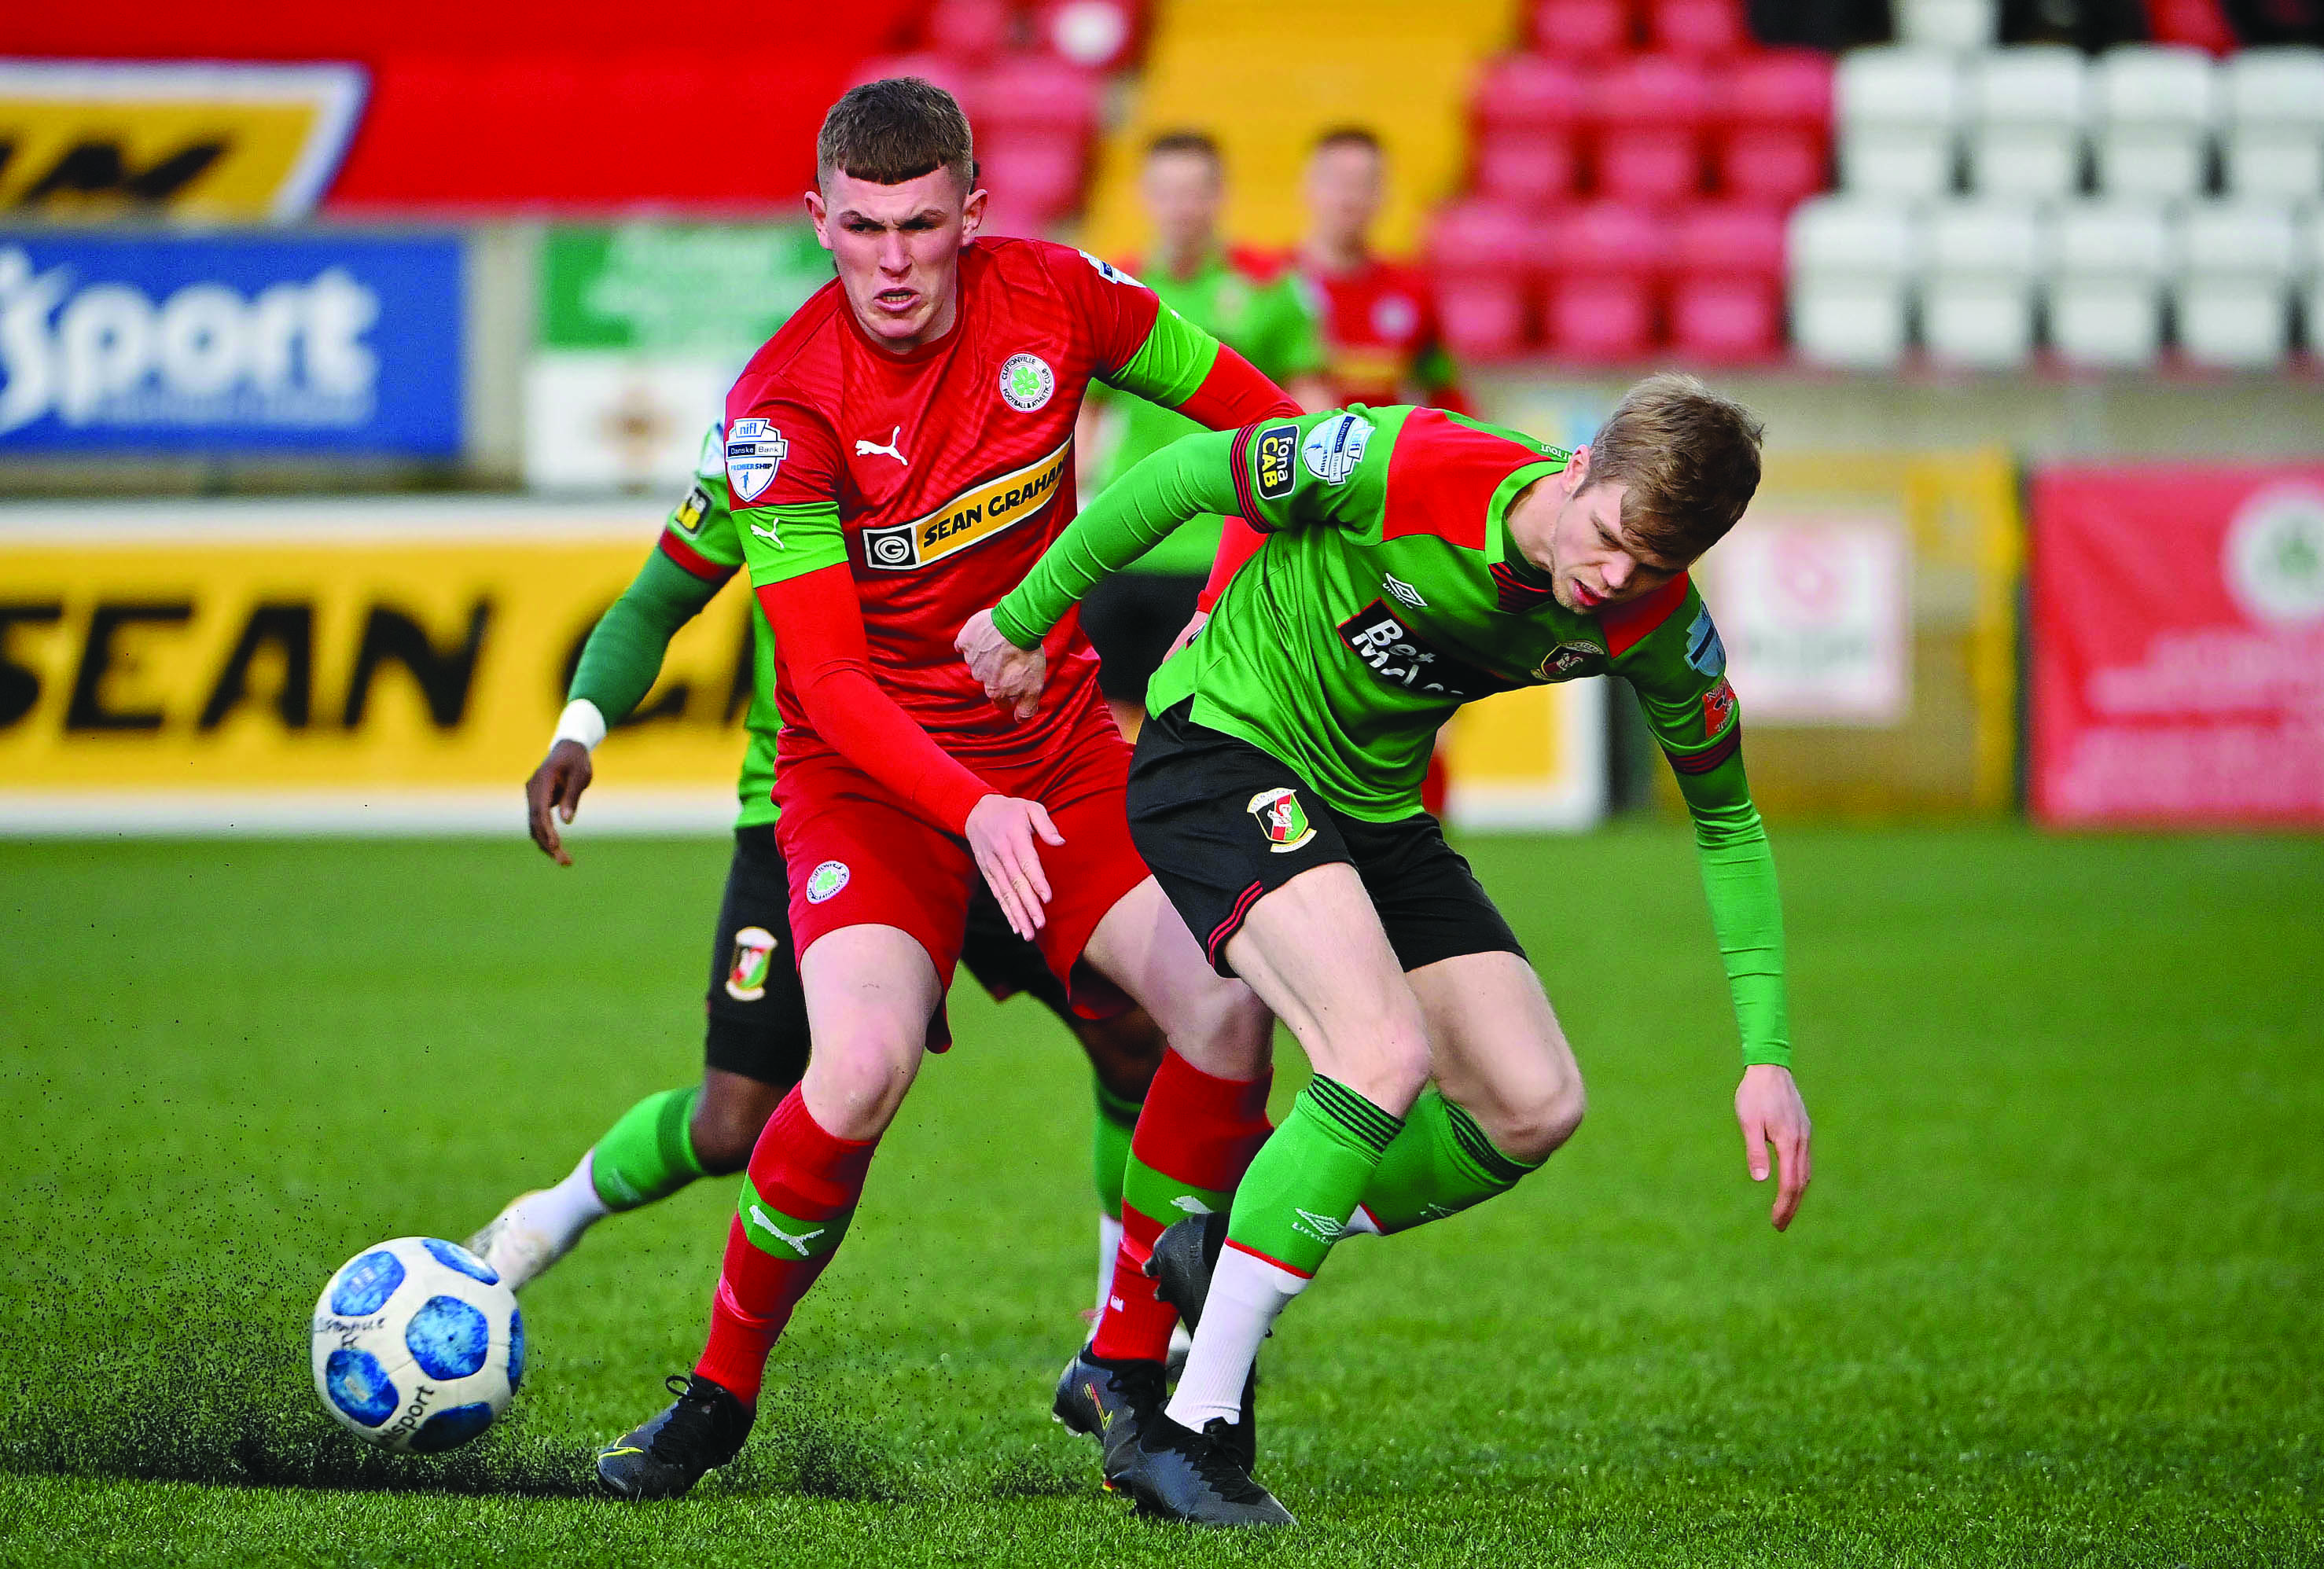 Cliftonville's Aaron Donnelly tries to hold off the challenge from Glentoran\'s Rhys Marshall during Tuesday night's 2-0 defeat at Solitude and the Reds will be hoping to bounce back when they host Carrick Rangers on this afternoon